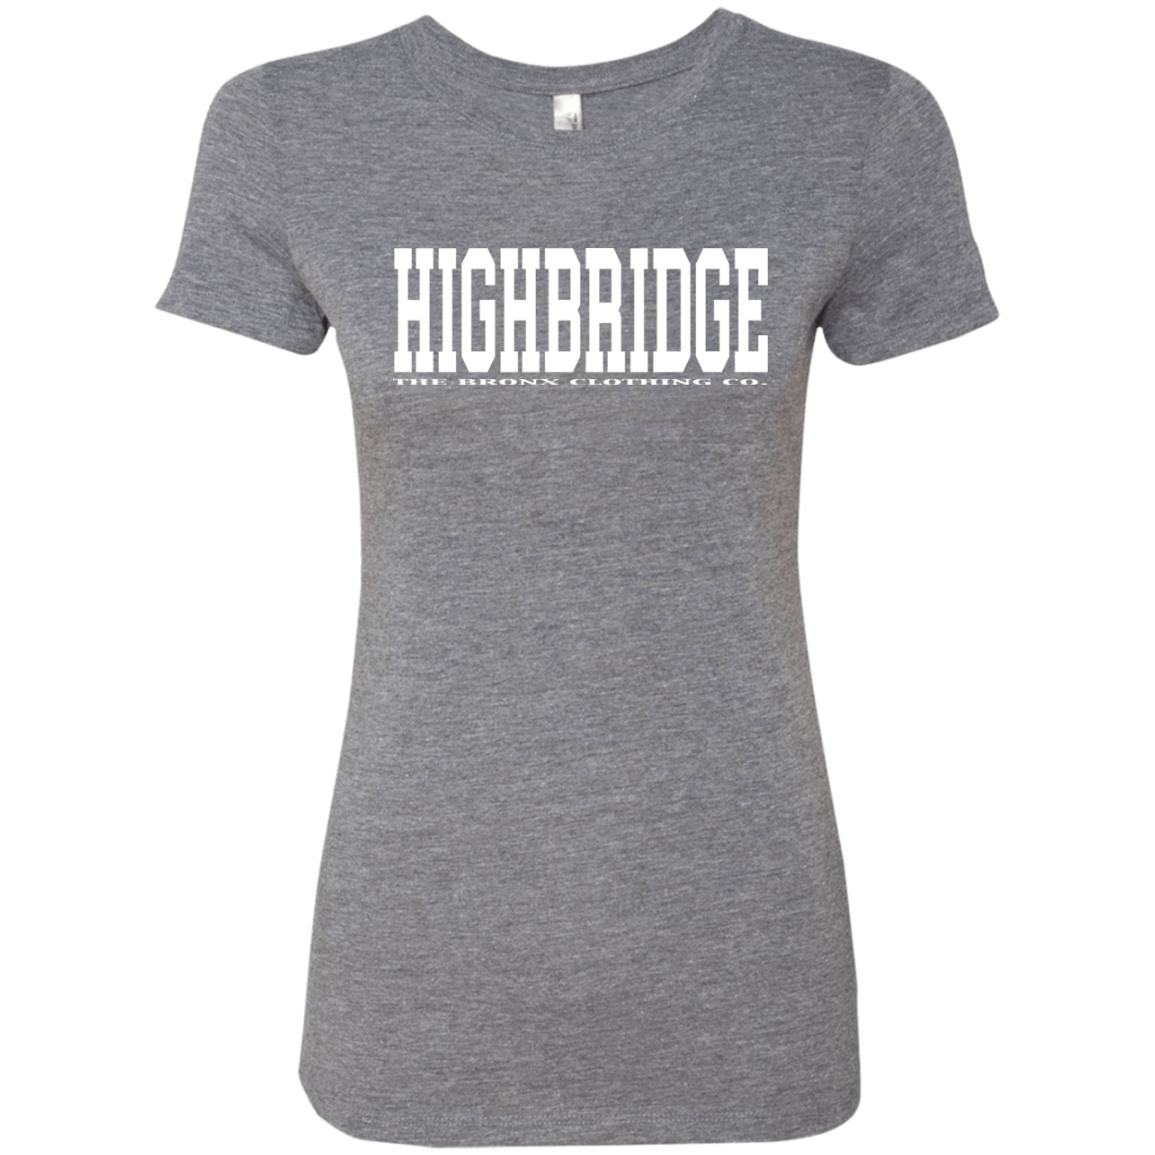 Highbridge Ladies' Tee - Neighborhood Series